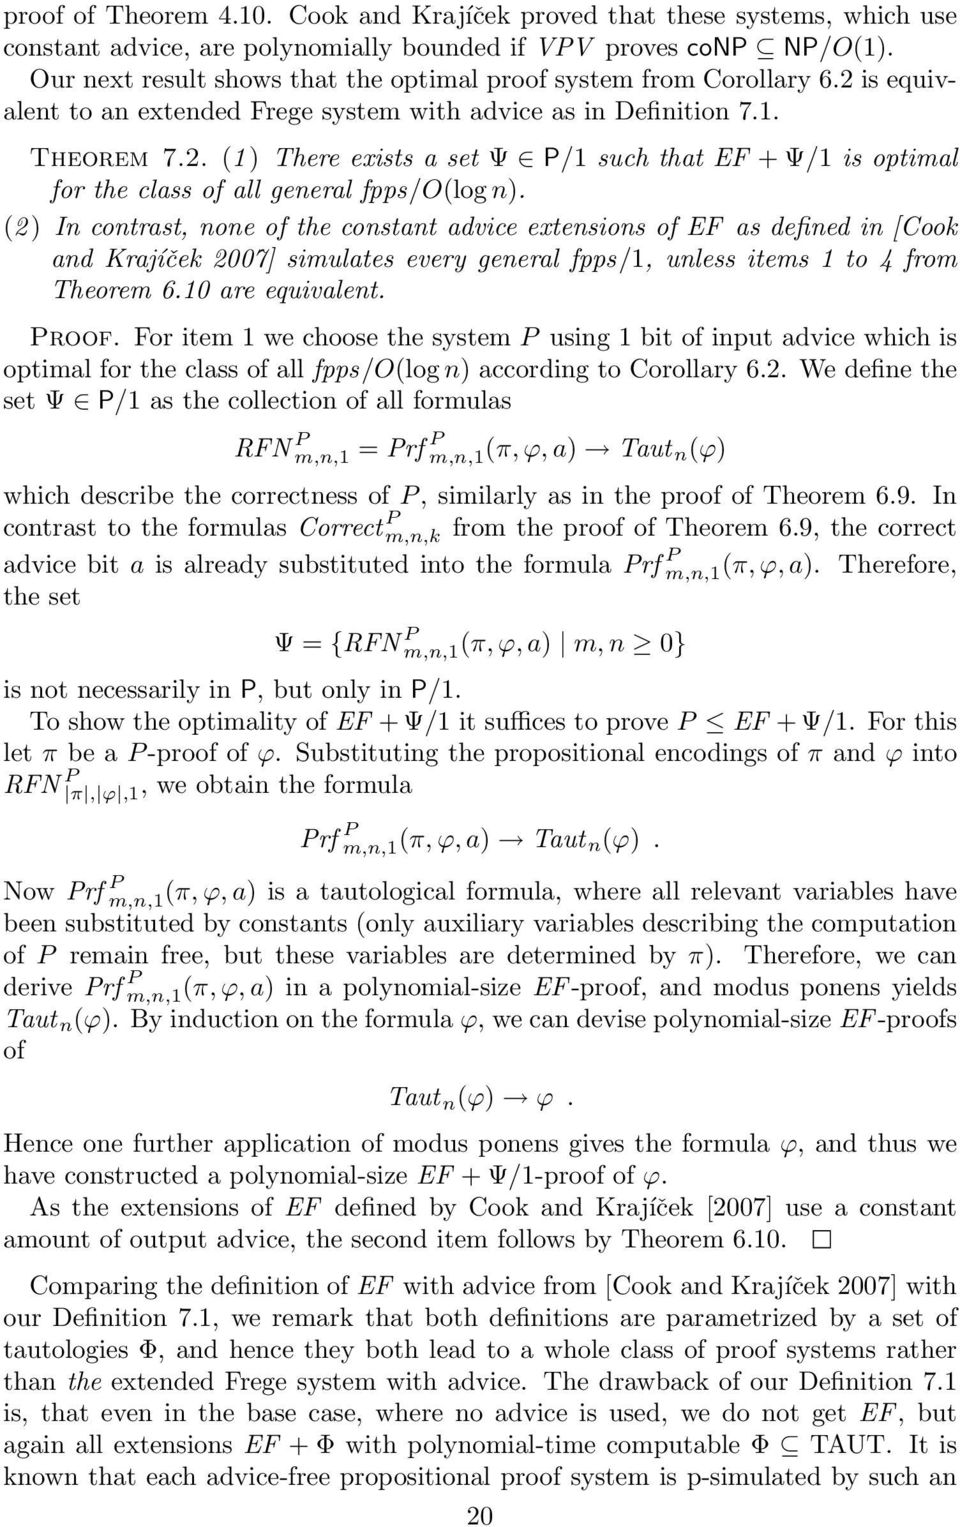 (2 ) In contrast, none of the constant advice extensions of EF as defined in [Cook and Krajíček 2007] simulates every general fpps/1, unless items 1 to 4 from Theorem 6.10 are equivalent. Proof.